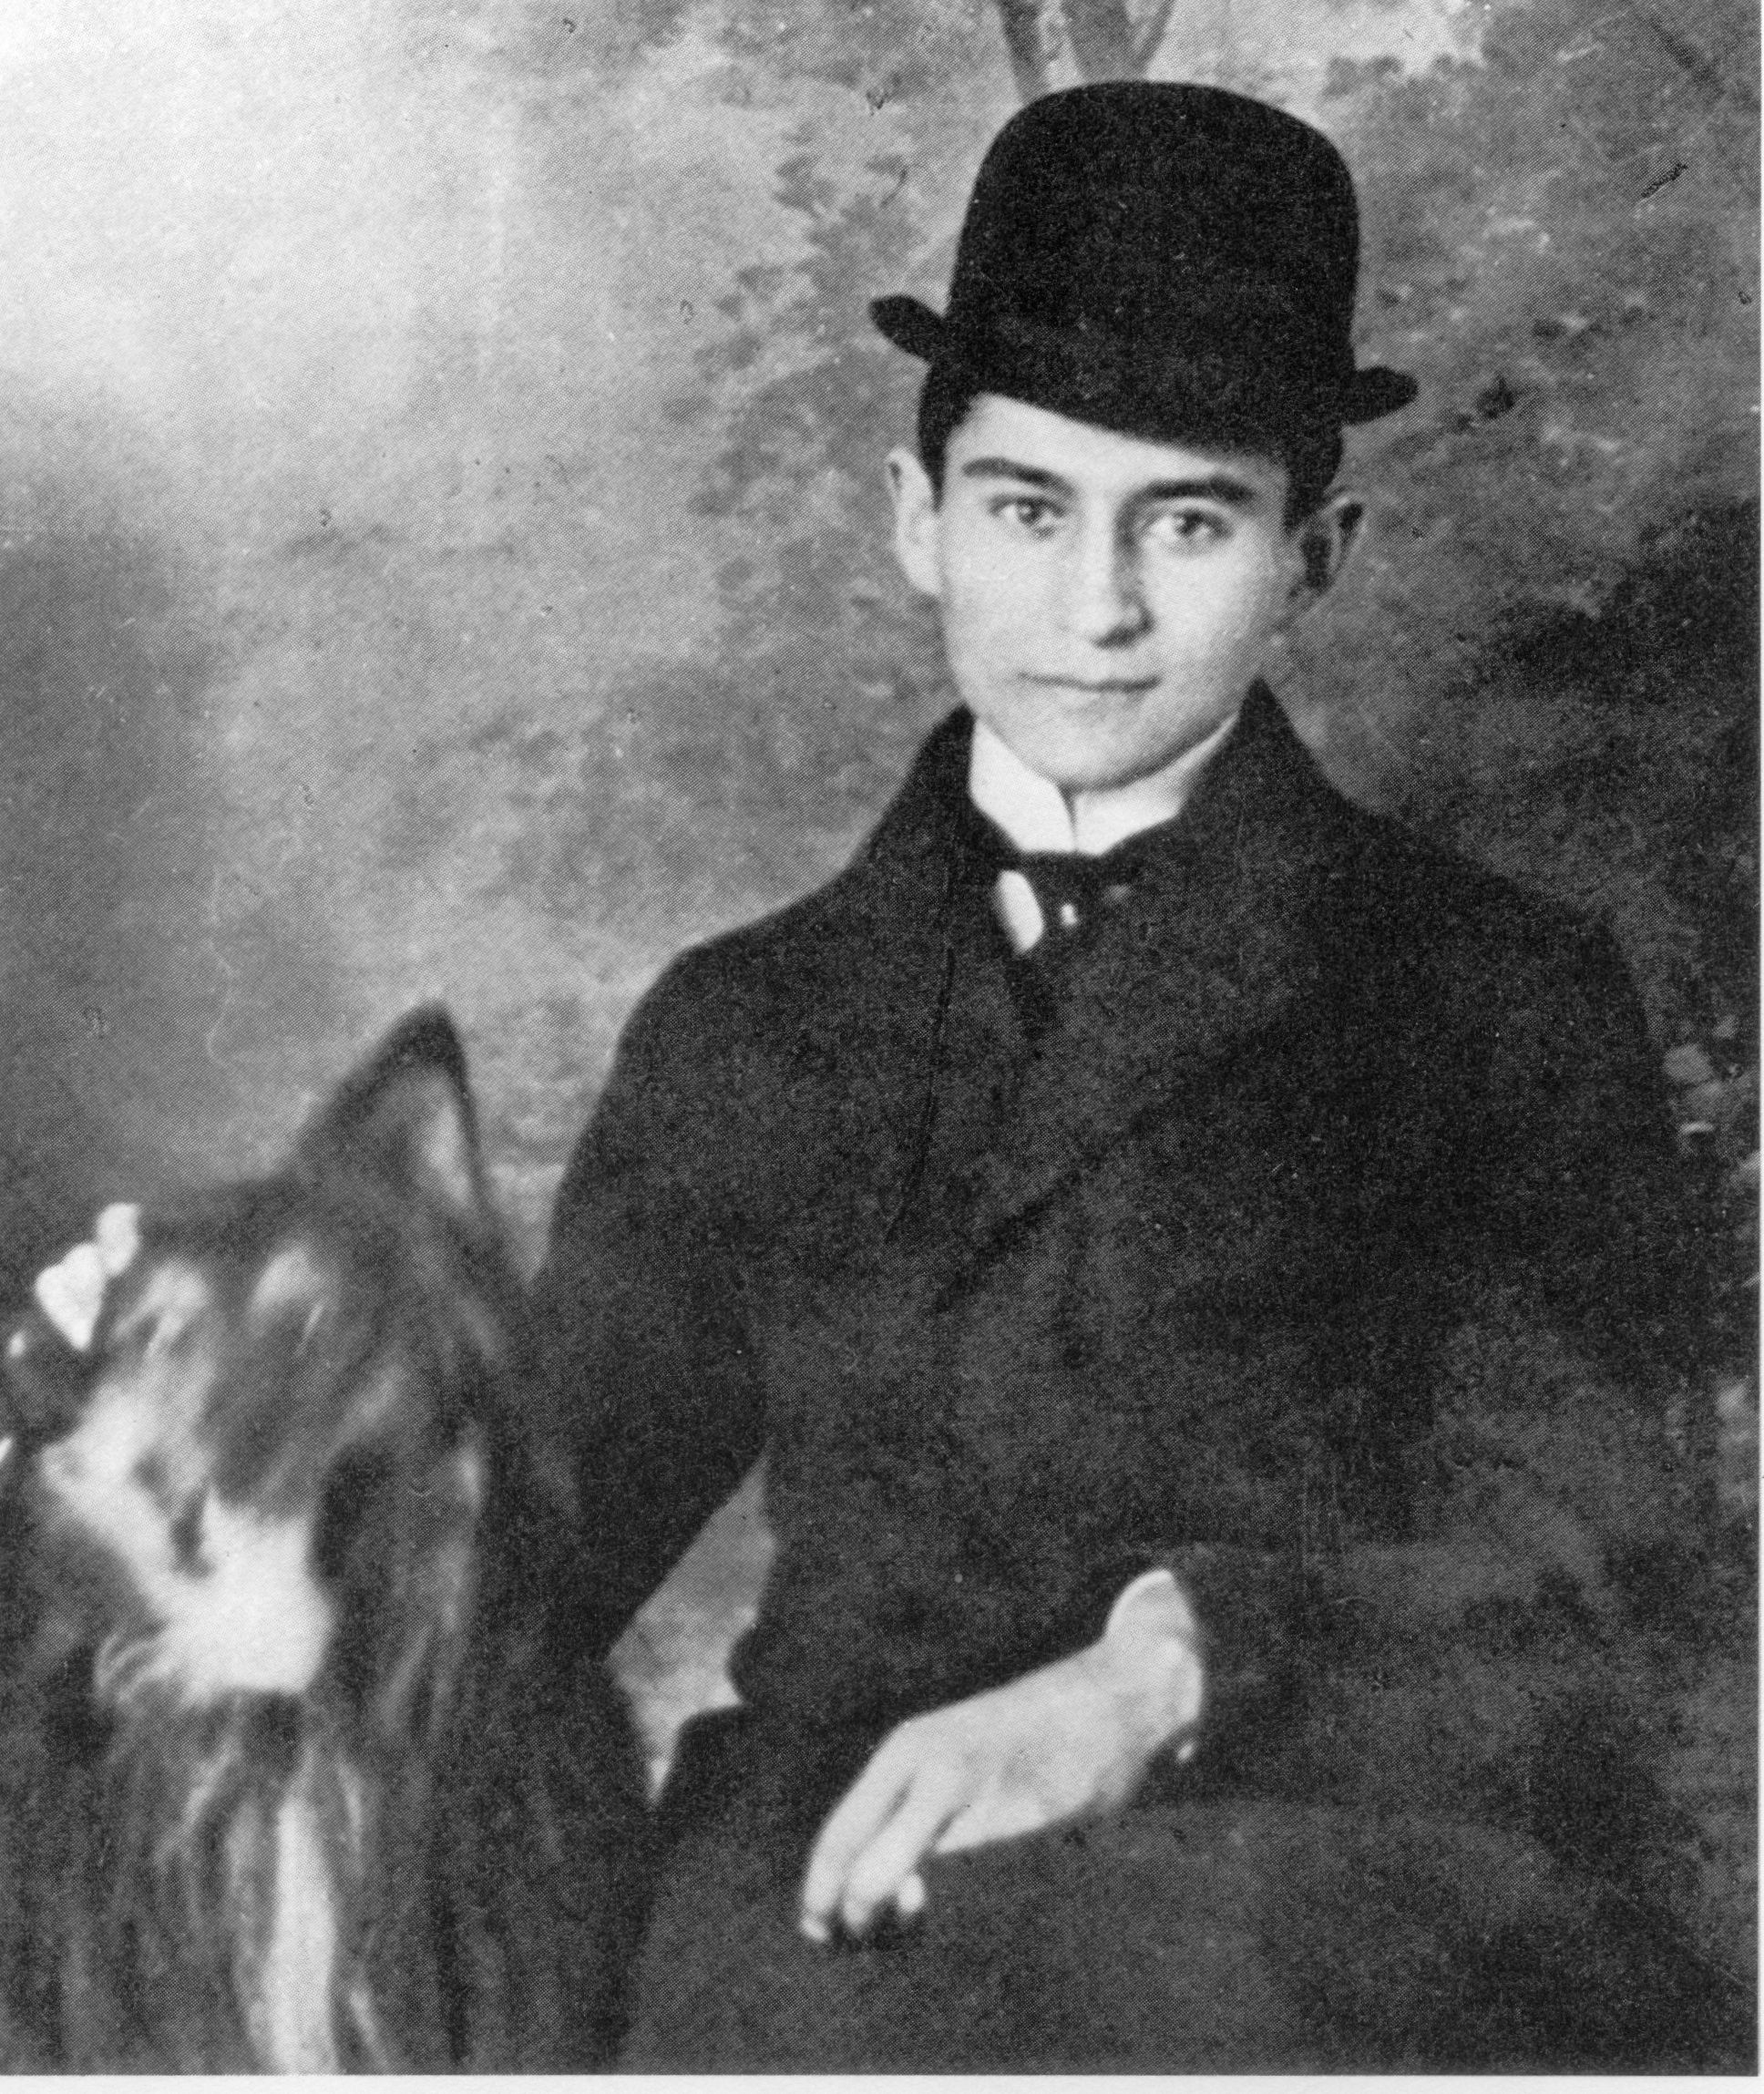 essay franz kafkas metamorphosis Below you will find five outstanding thesis statements for the metamorphosis by franz kafka that can be used as essay starters or paper topics.